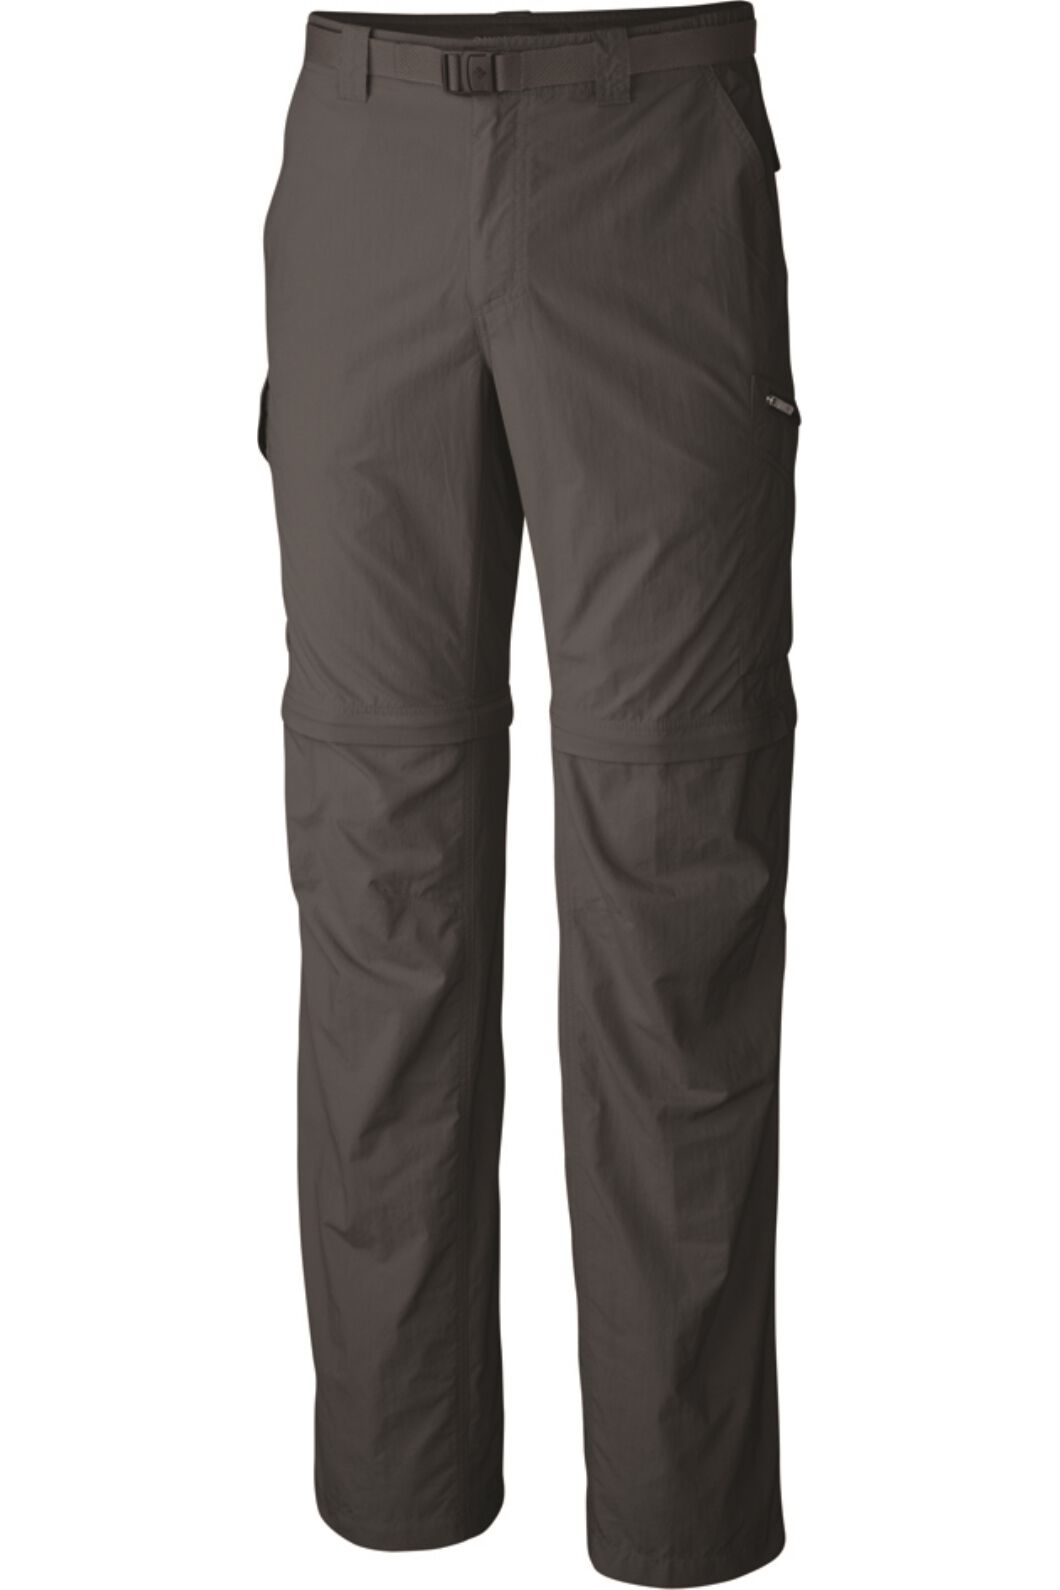 Columbia Men's  Ridge Convertible Pants Grill, Grill, hi-res